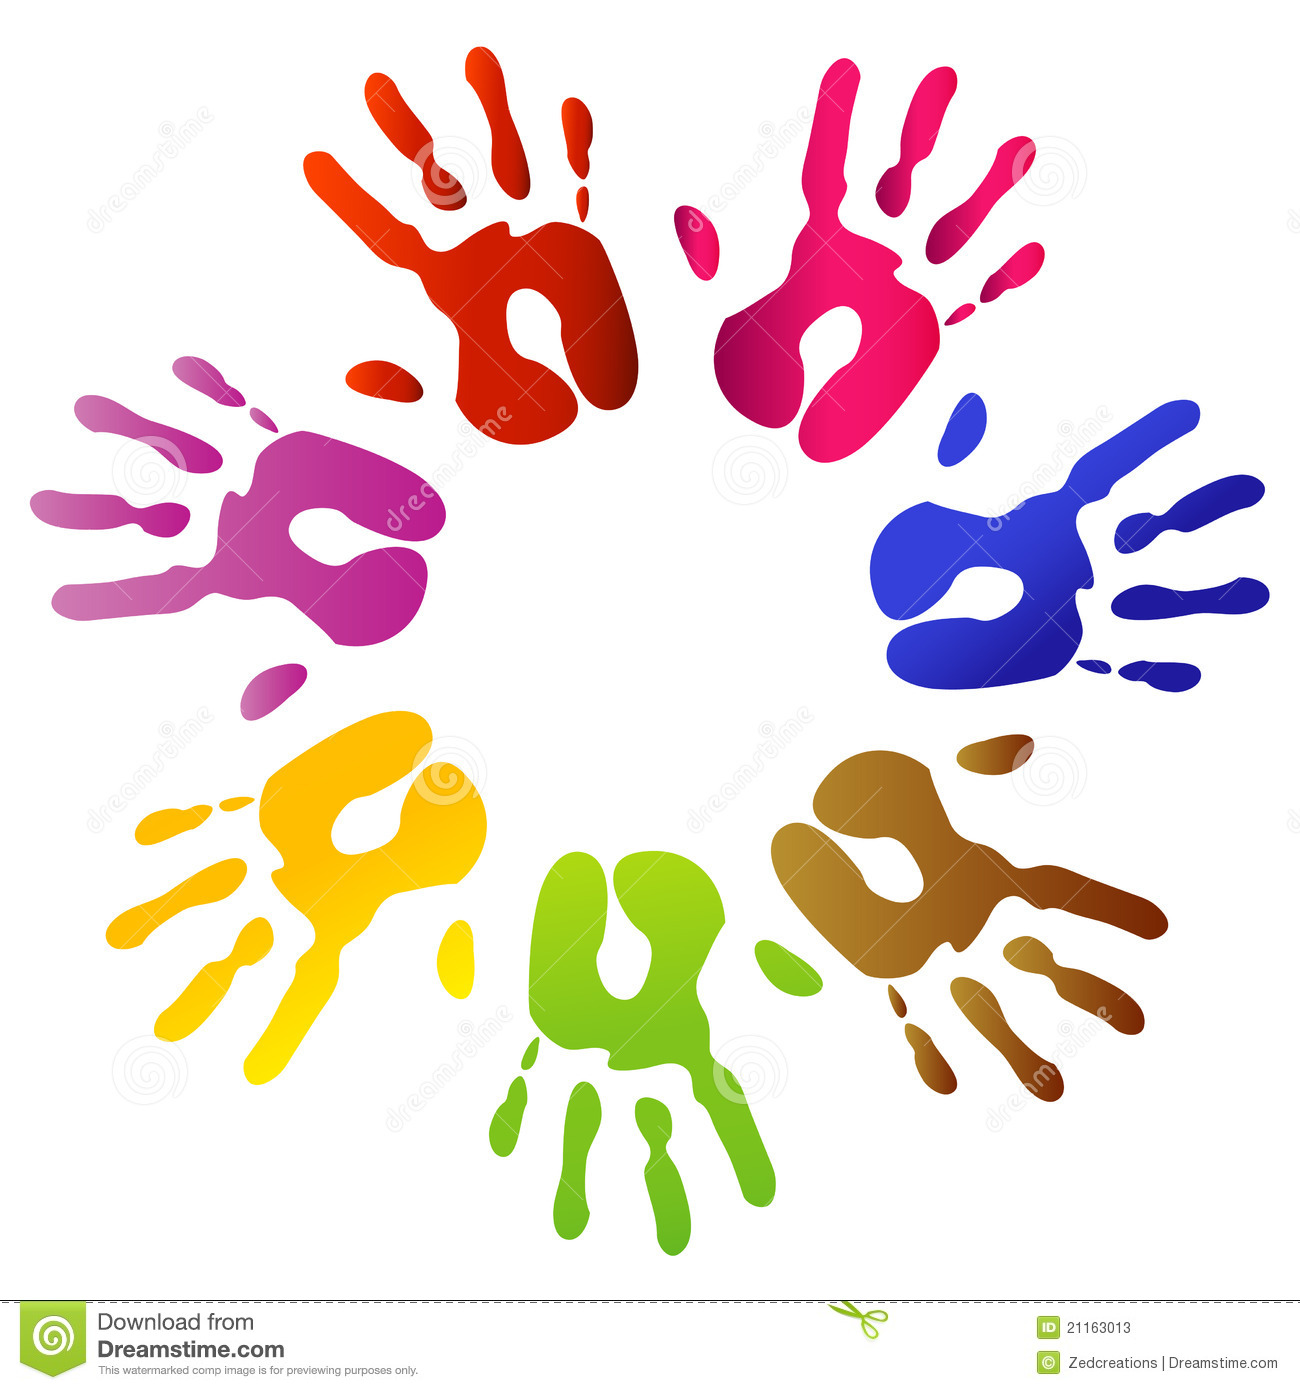 Preschool Handprint Cl...